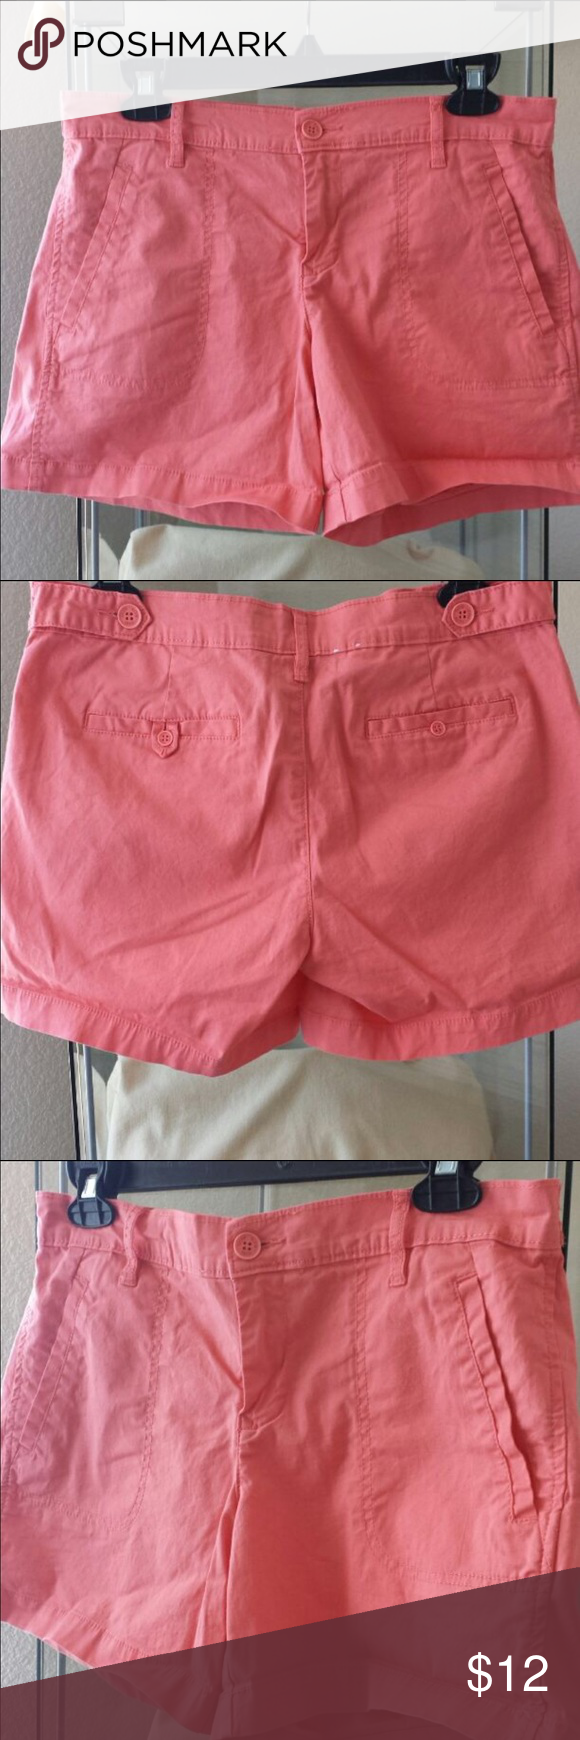 Calvin Klein Size 6 / In good condition / no stains or holes / Like new Calvin Klein Shorts